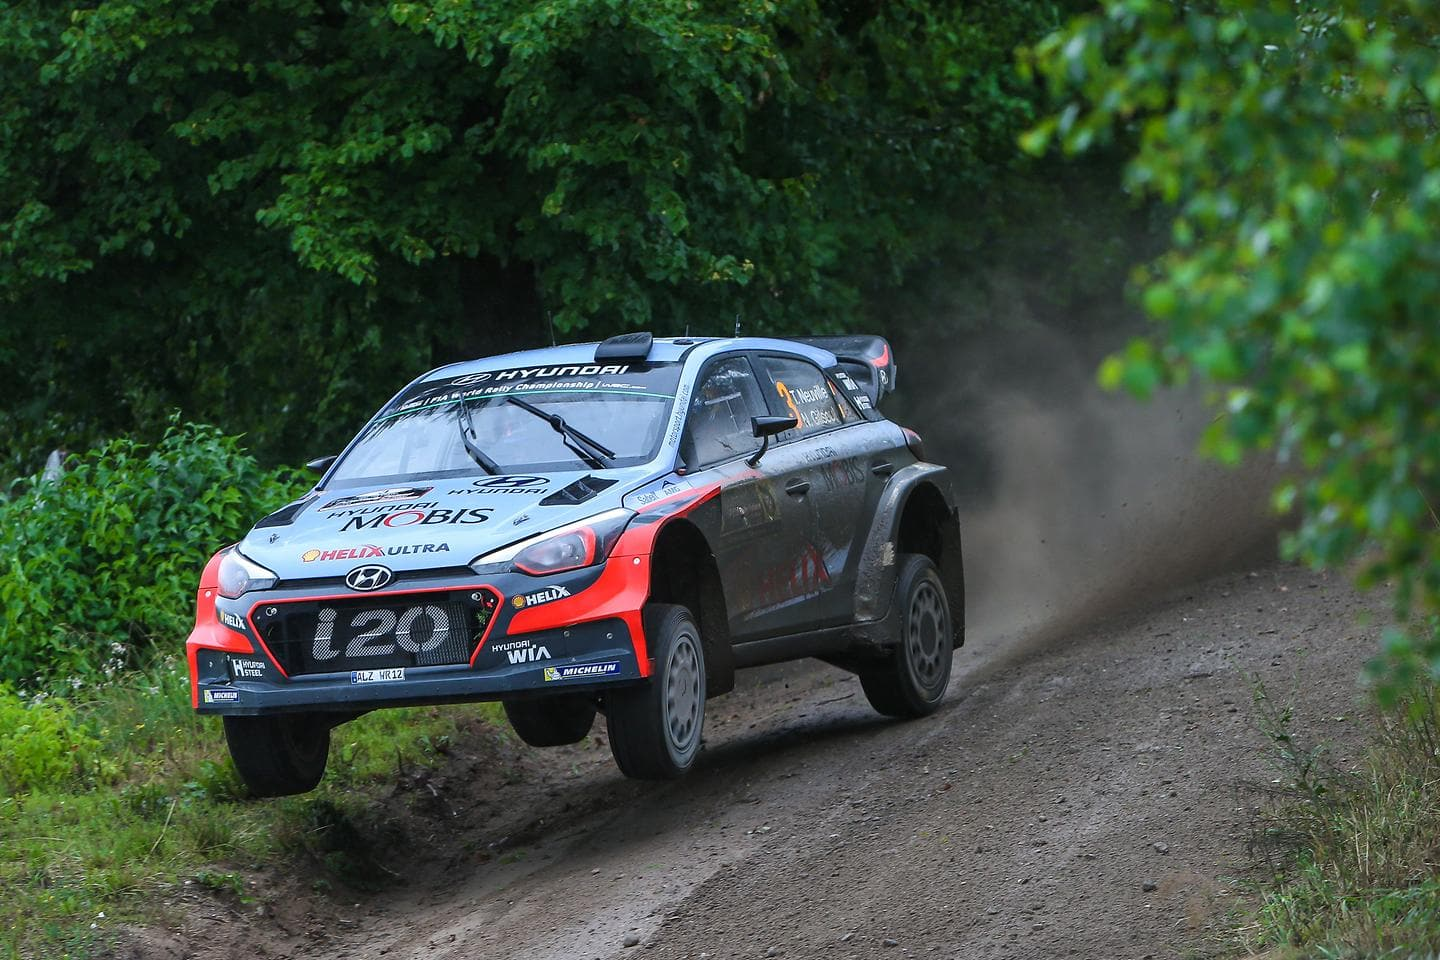 Hyundai Motorsport Claims Fifth Podium for 2016 Season at WRC Rally Poland